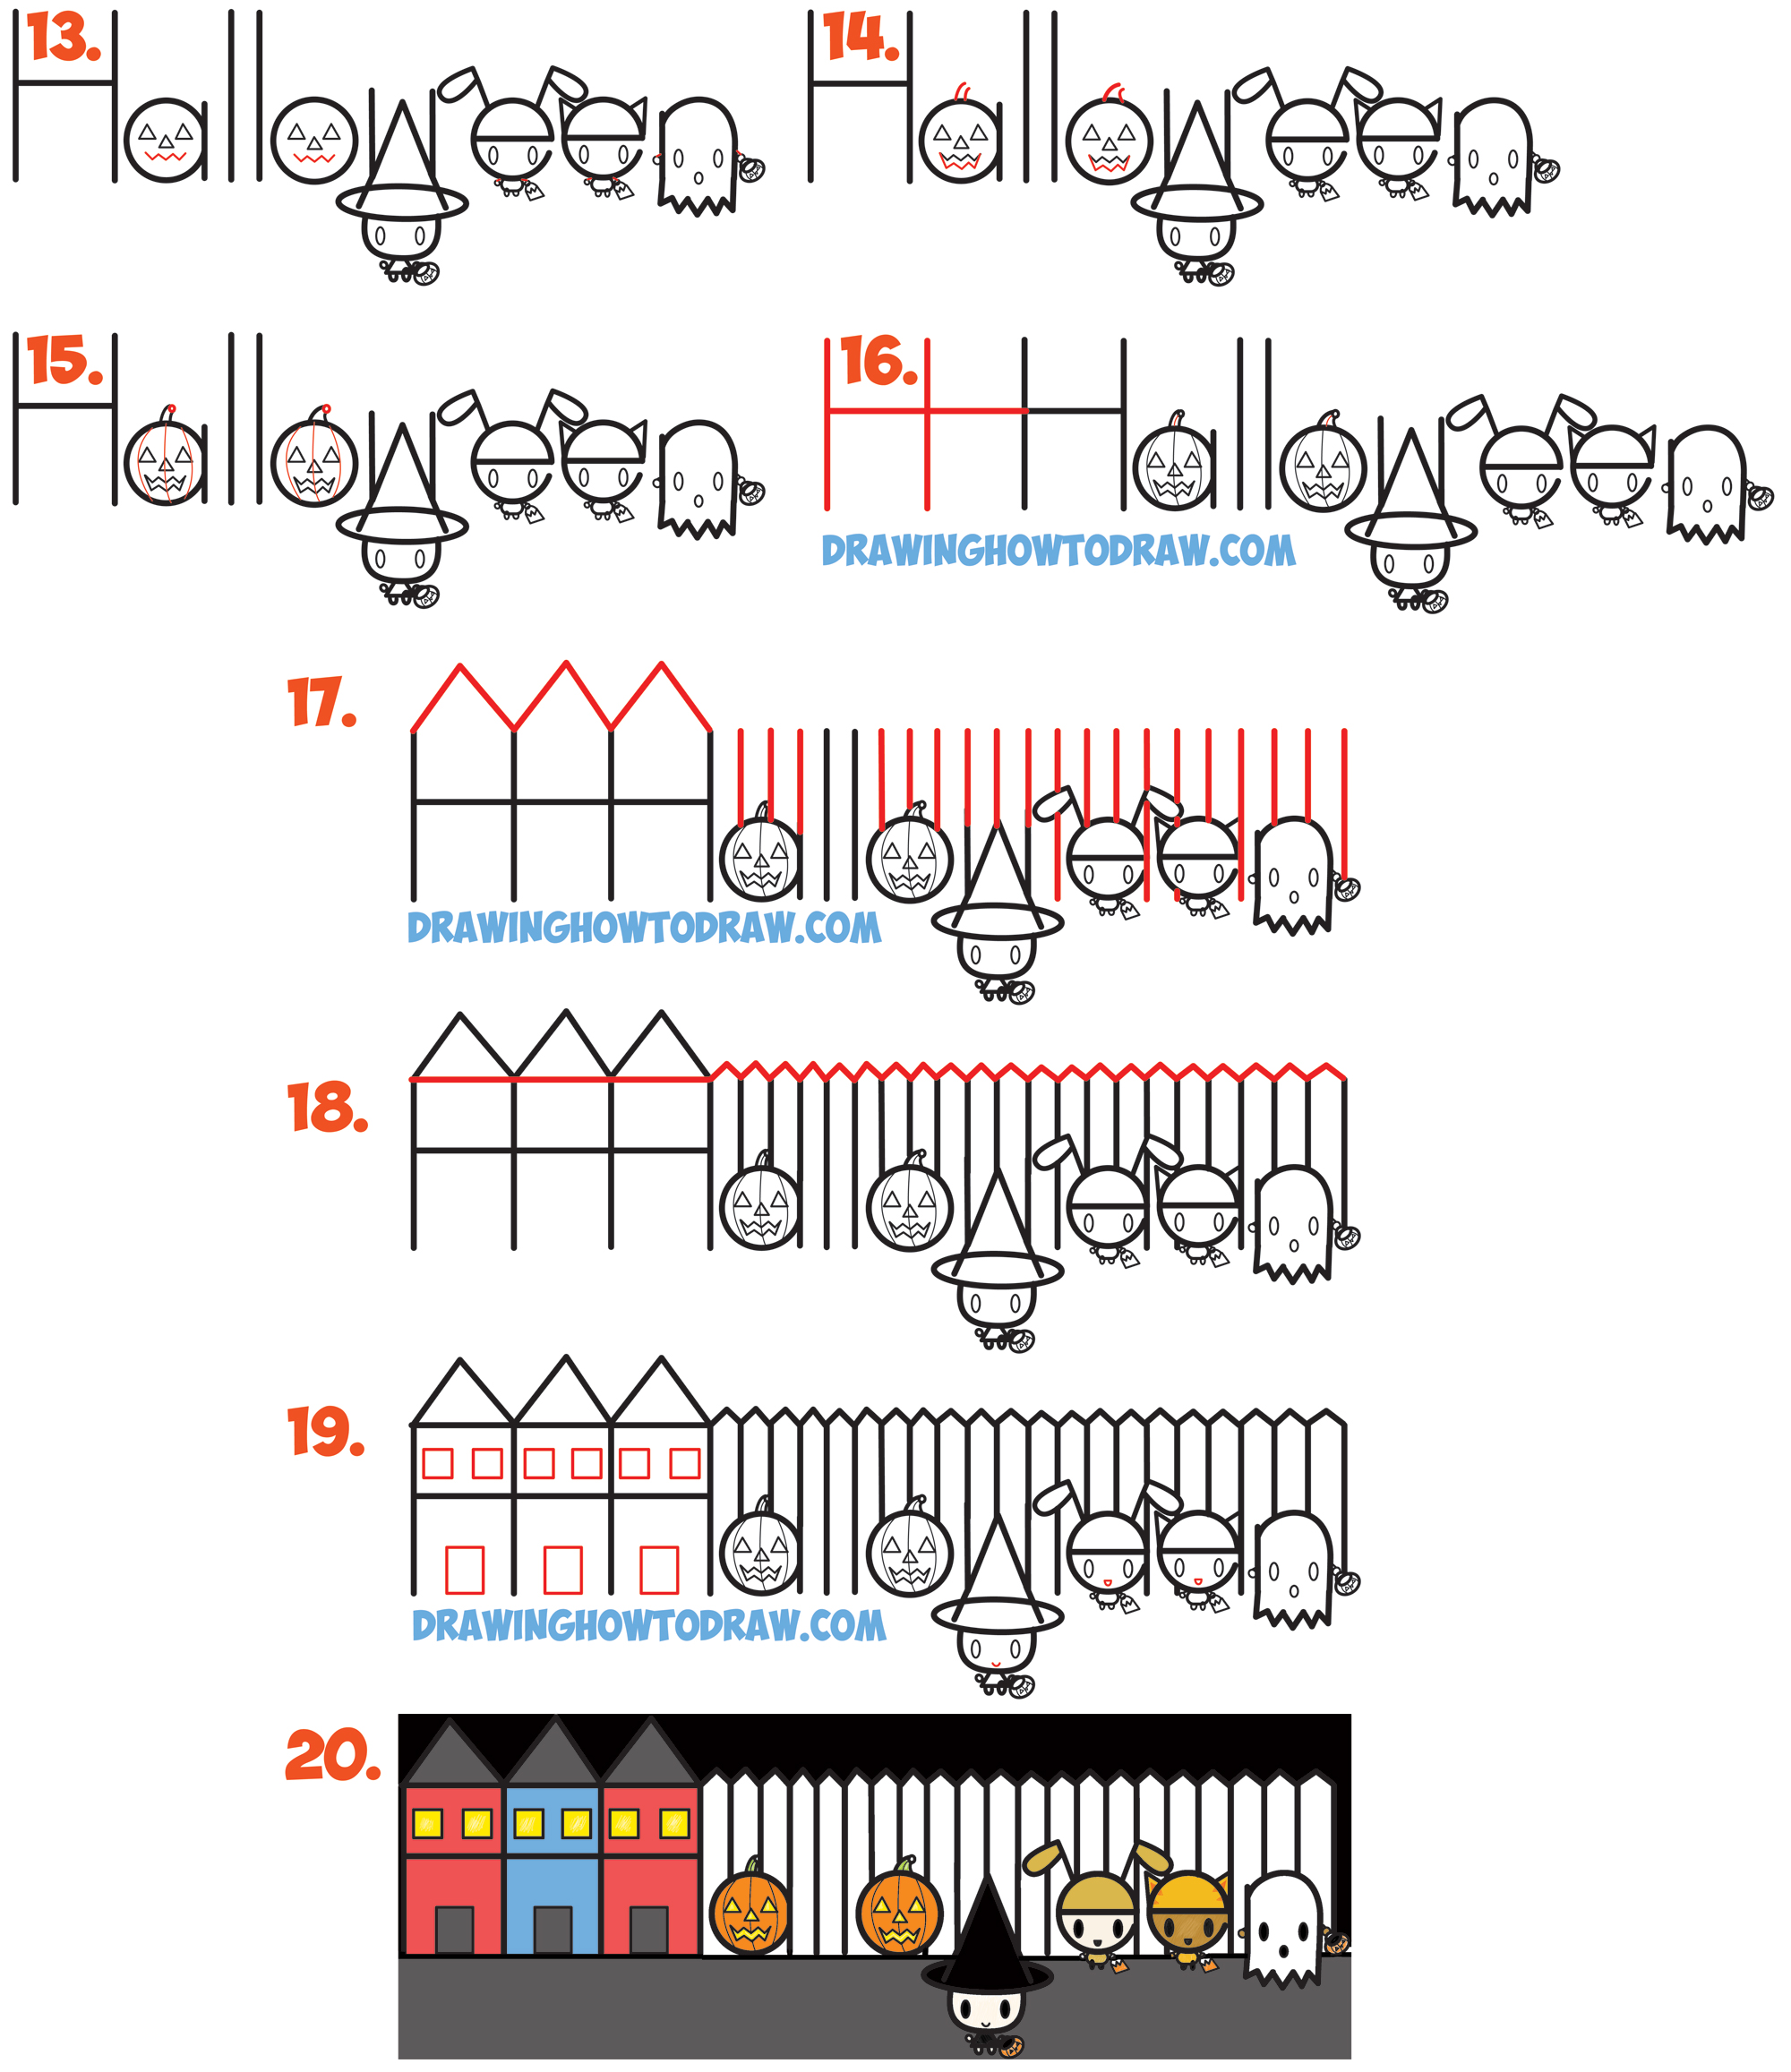 Learn How to Cartoon Draw Halloween Trick or Treating Scene from the Word (Word Cartoons Simple Step by Step Drawing Lessonfor Kids)